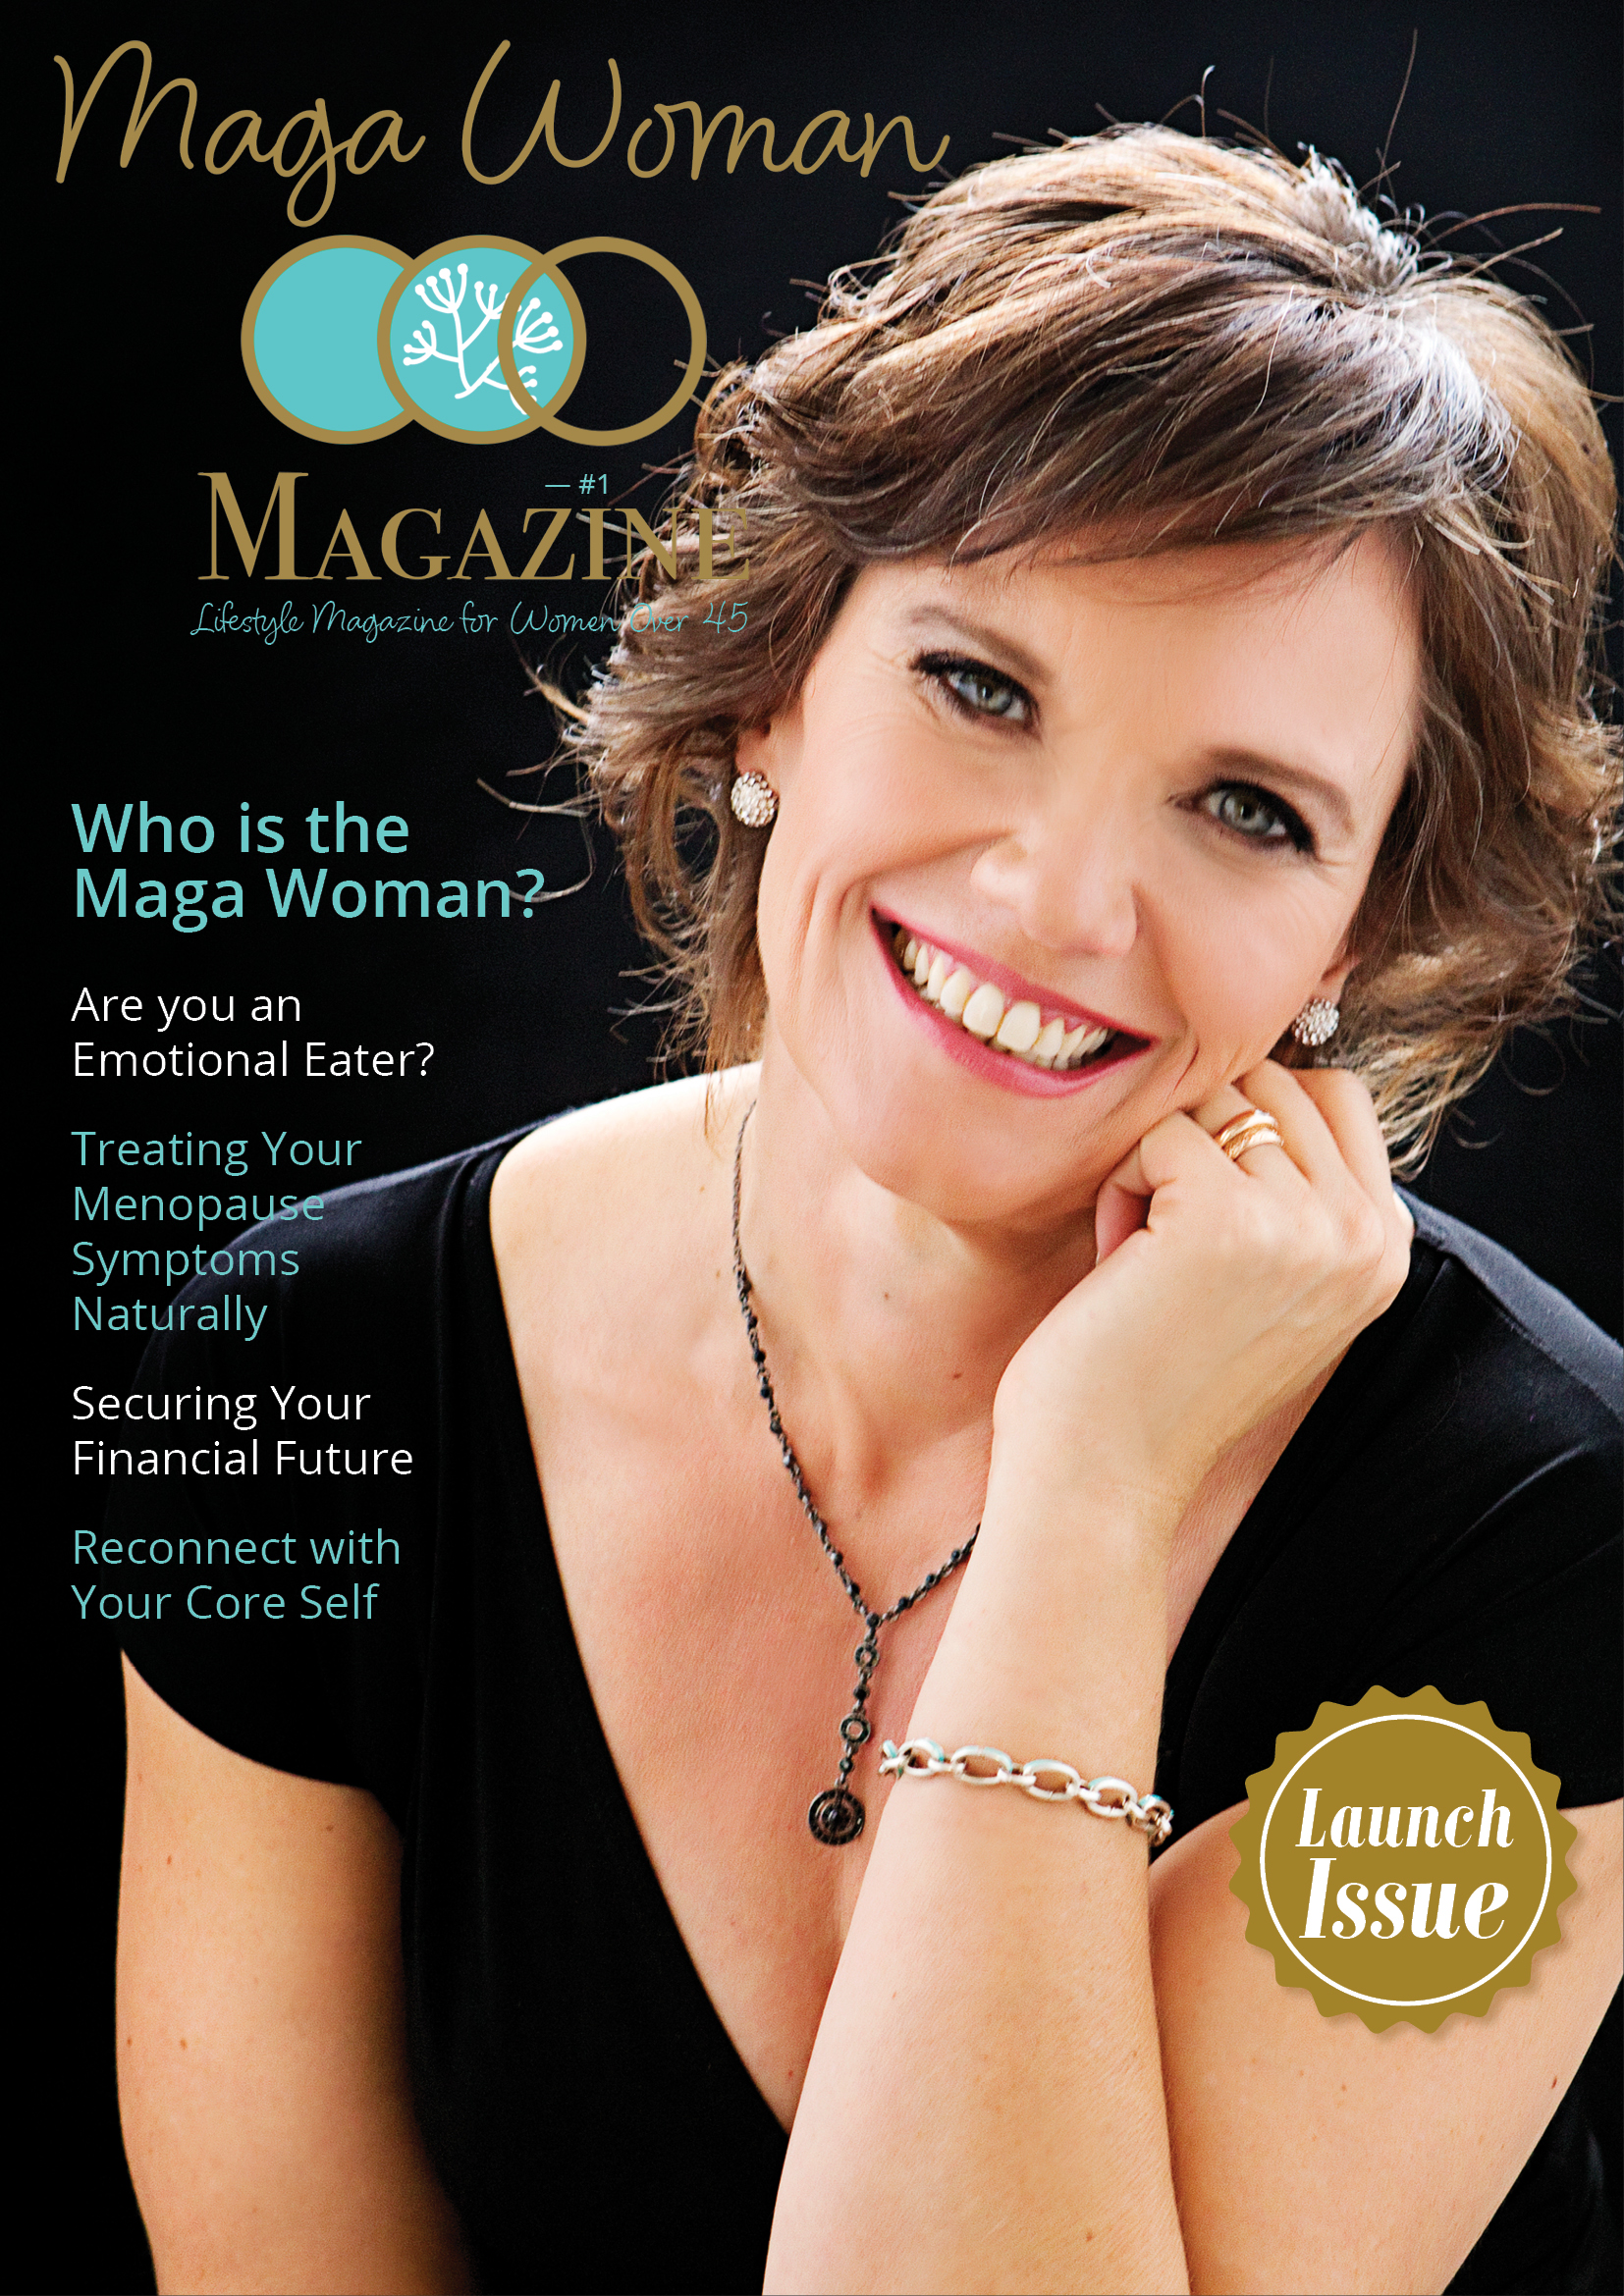 Maga Woman Magazine Issue #1